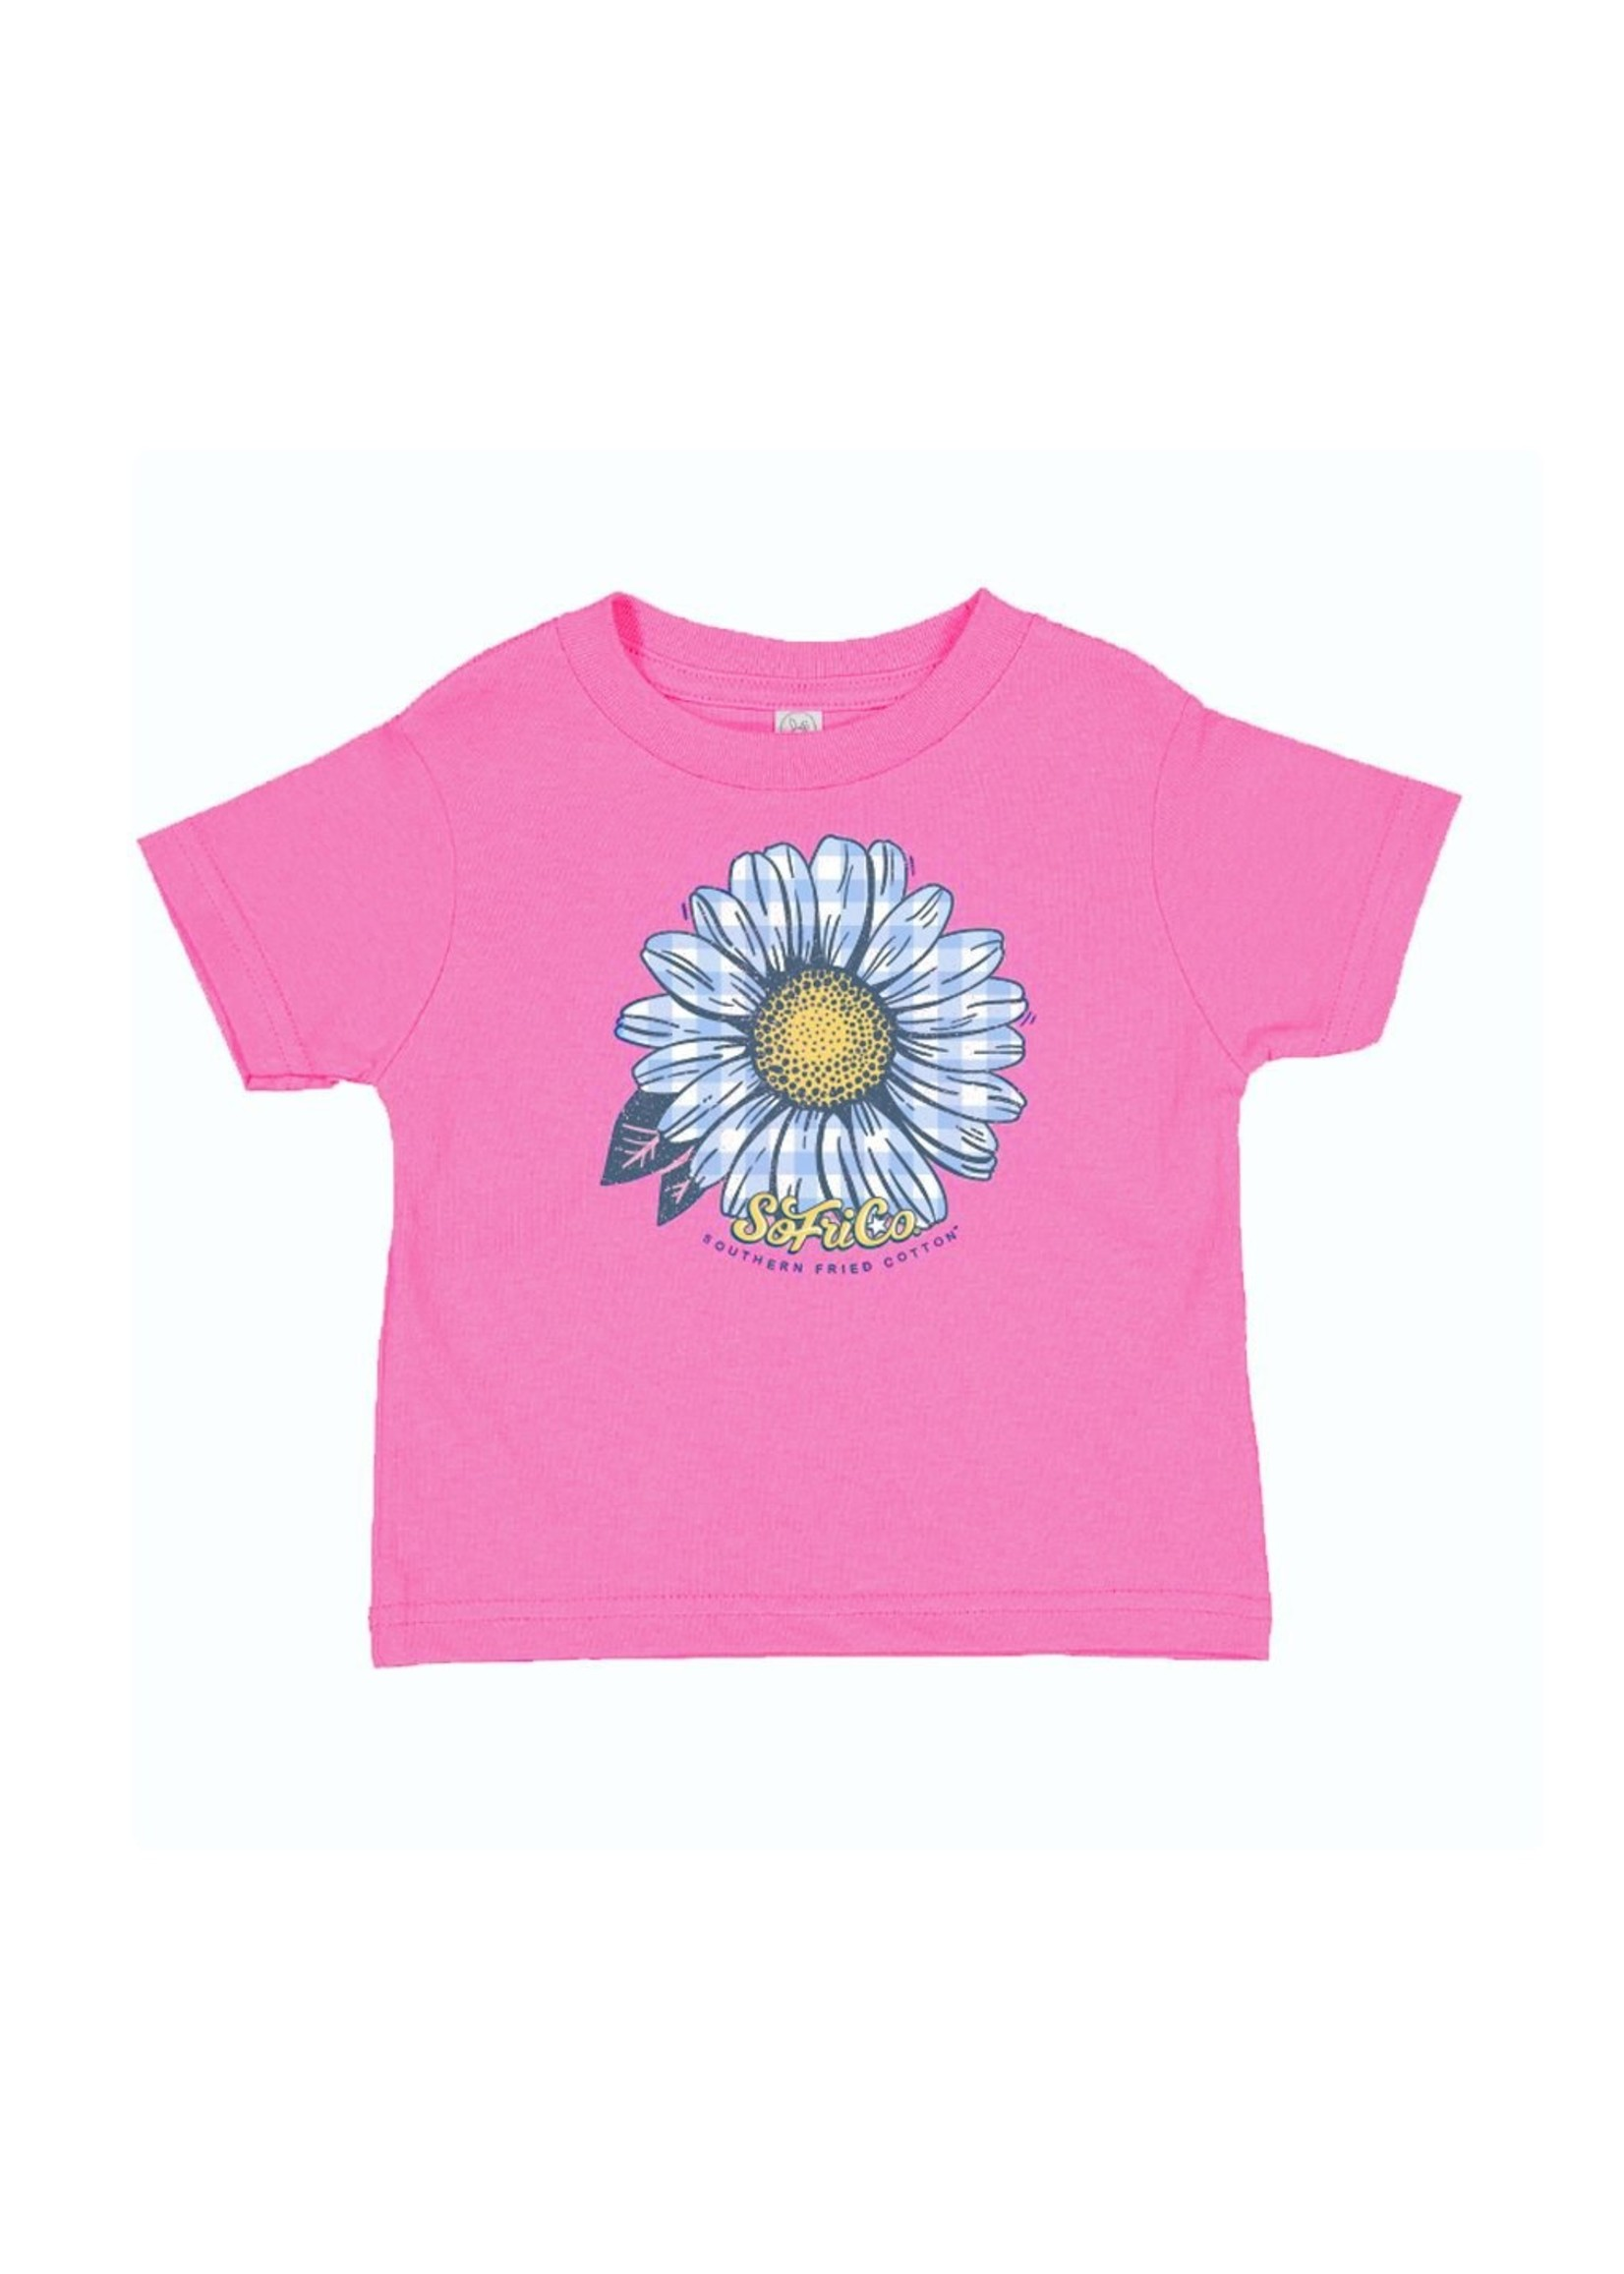 Southern Fried Cotton Let It Be - Toddler Short Sleeve